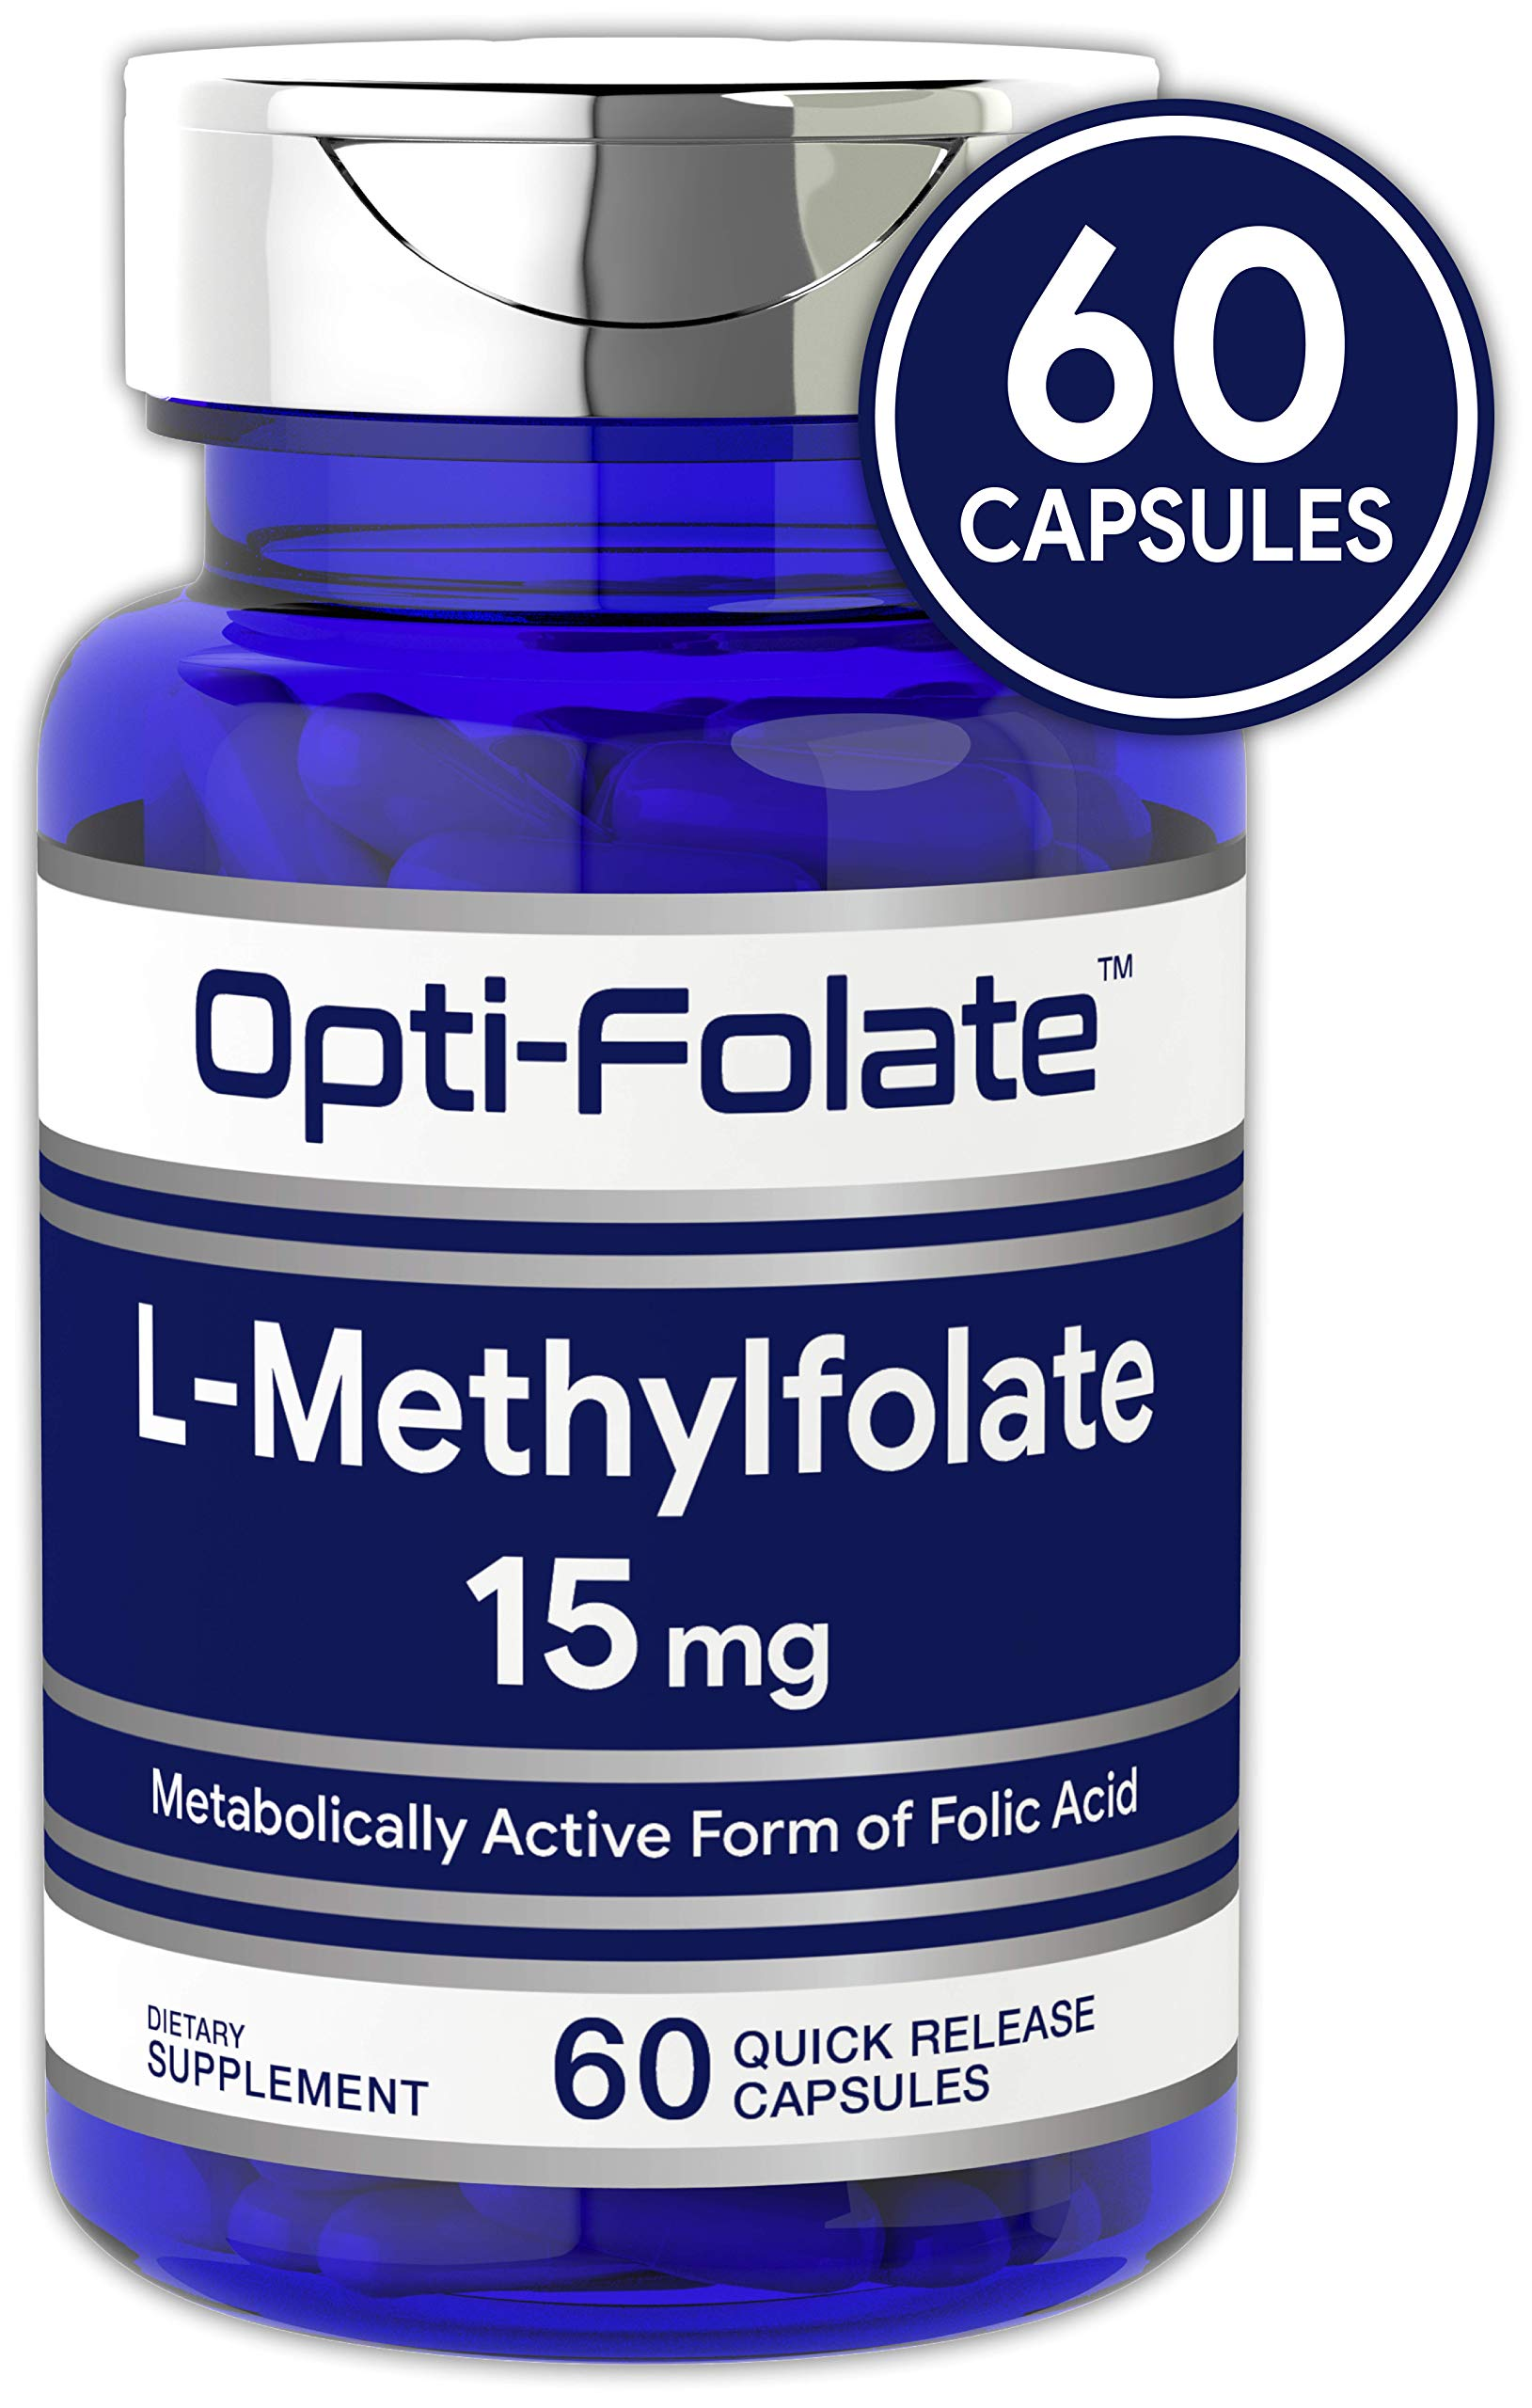 L Methylfolate 15mg | 60 Capsules | Max Potency | Optimized and Activated | Non-GMO, Gluten Free | Methyl Folate, 5-MTHF | by Opti-Folate by Carlyle